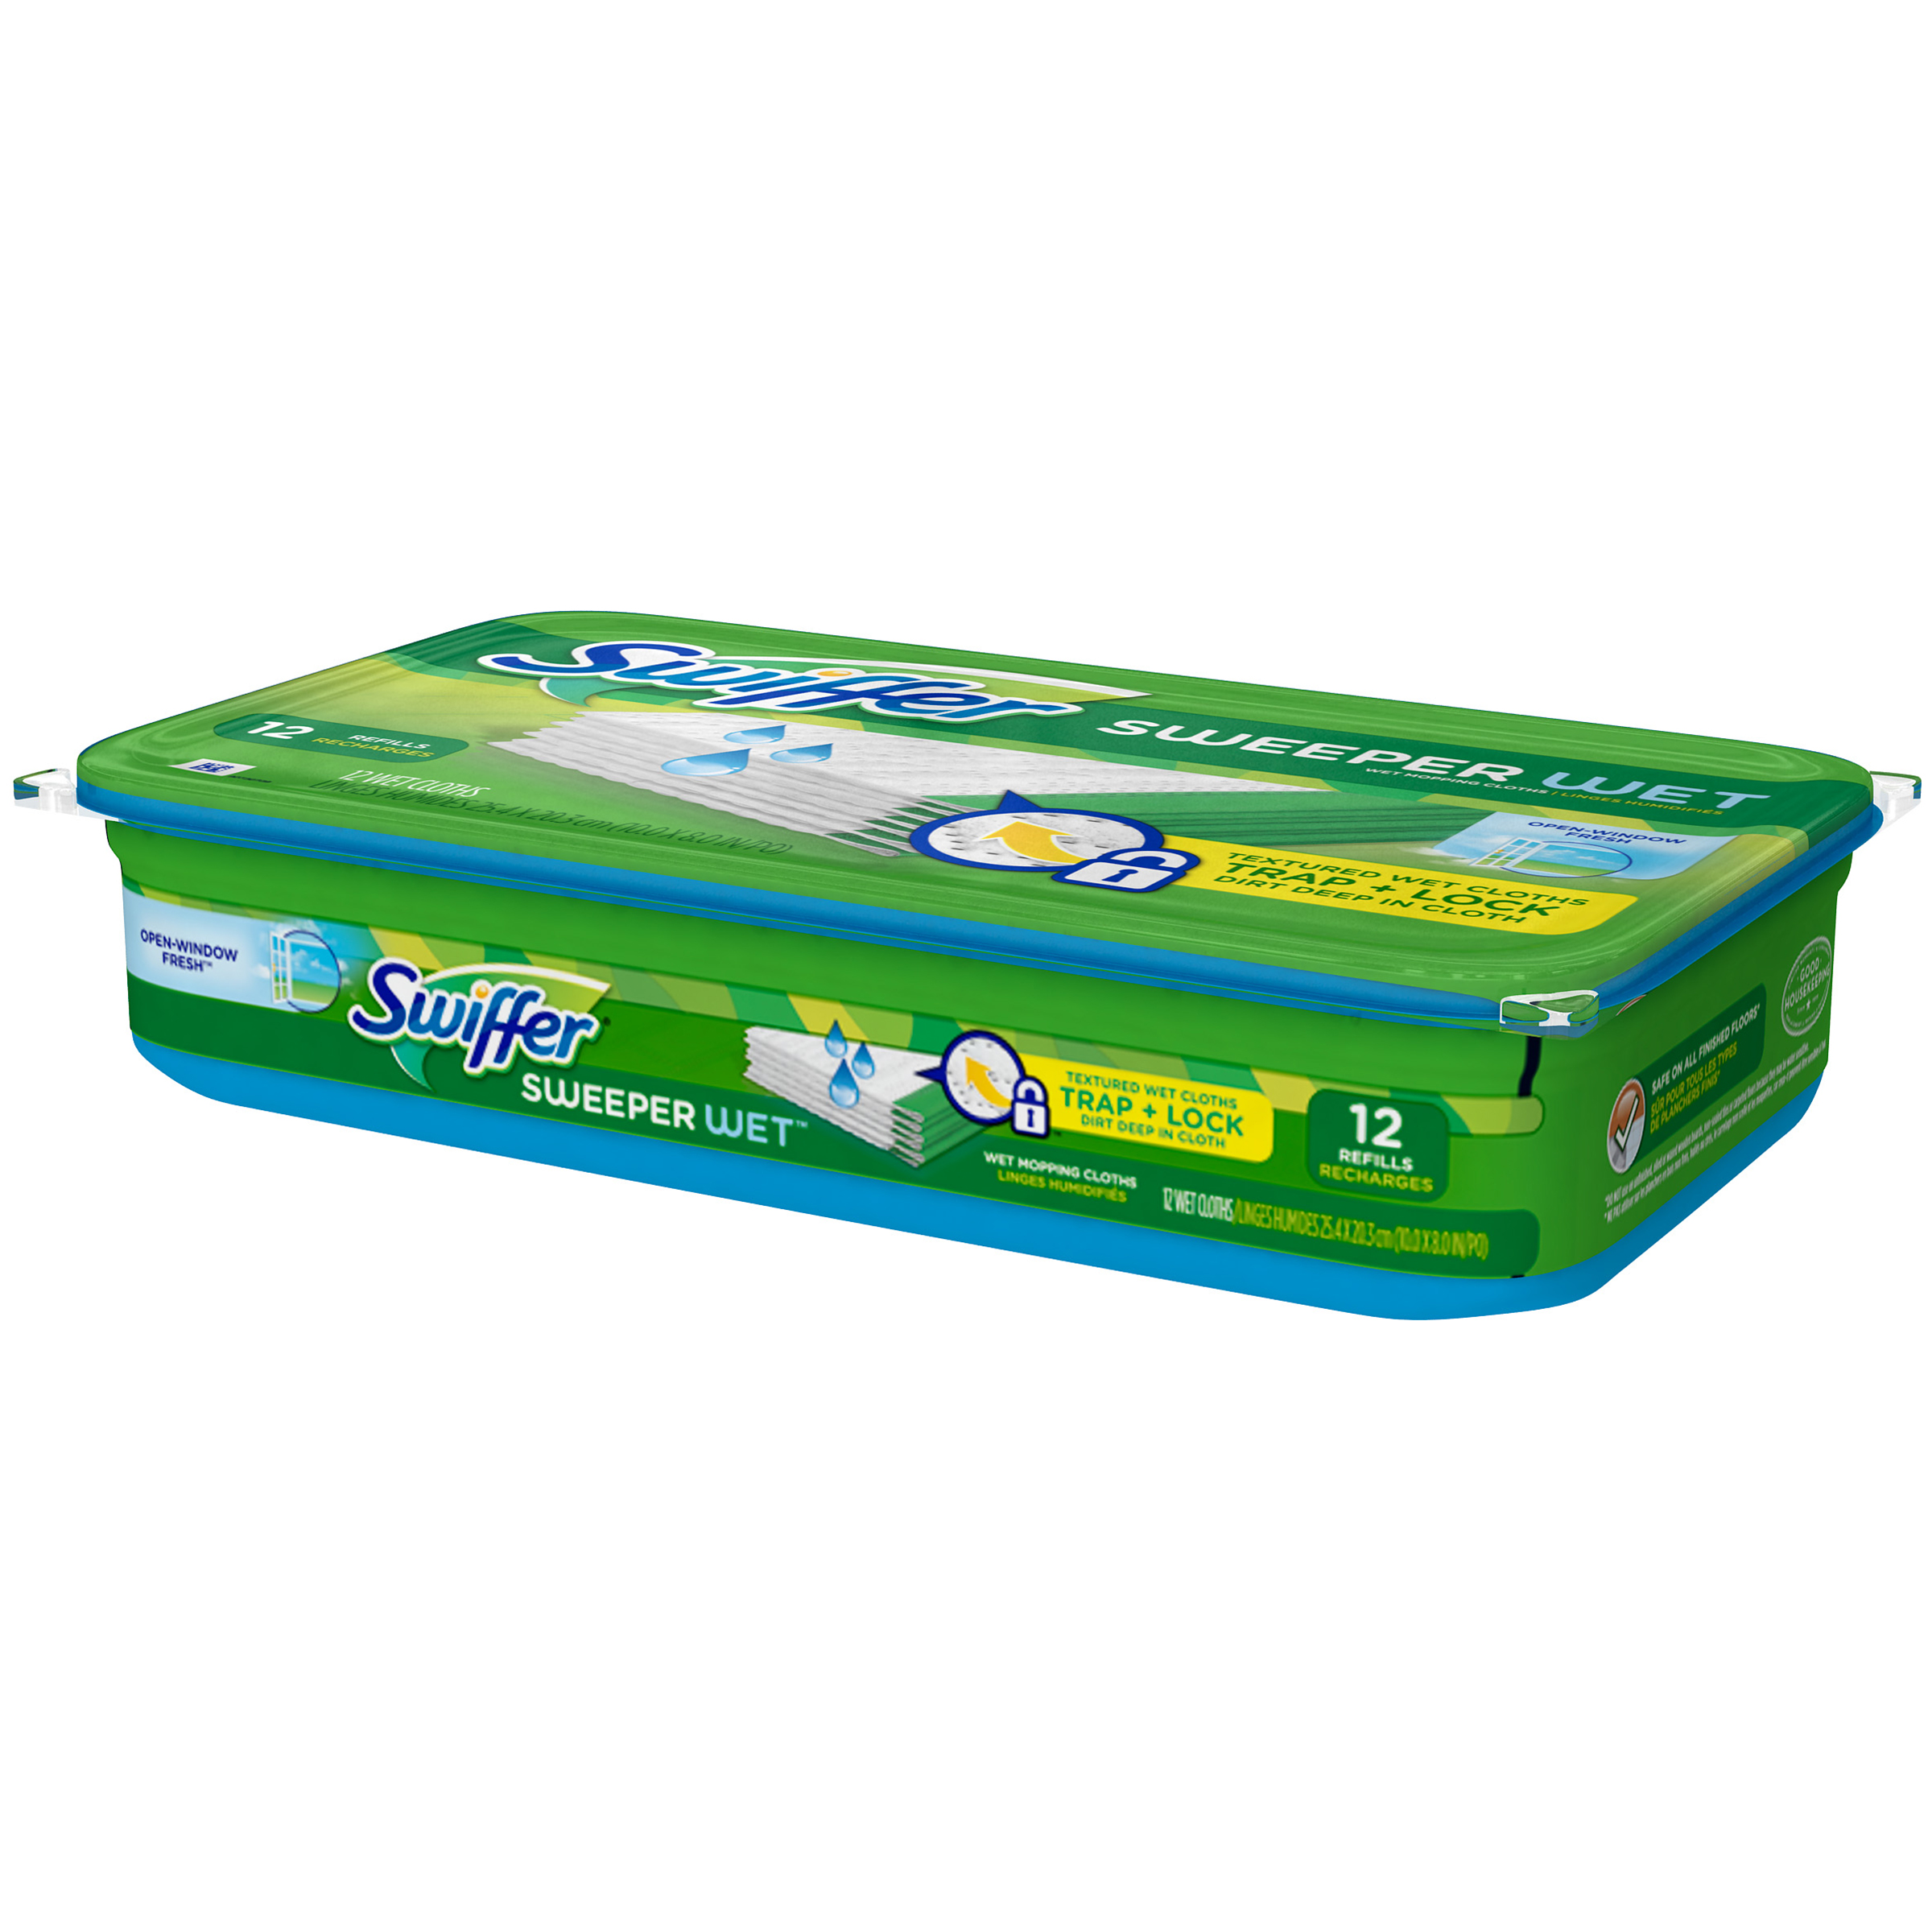 Swiffer Swiffer Sweeper Wet Mopping Pad Refills for Floor Mop Open Window Fresh Scent 12 Count Surface Care